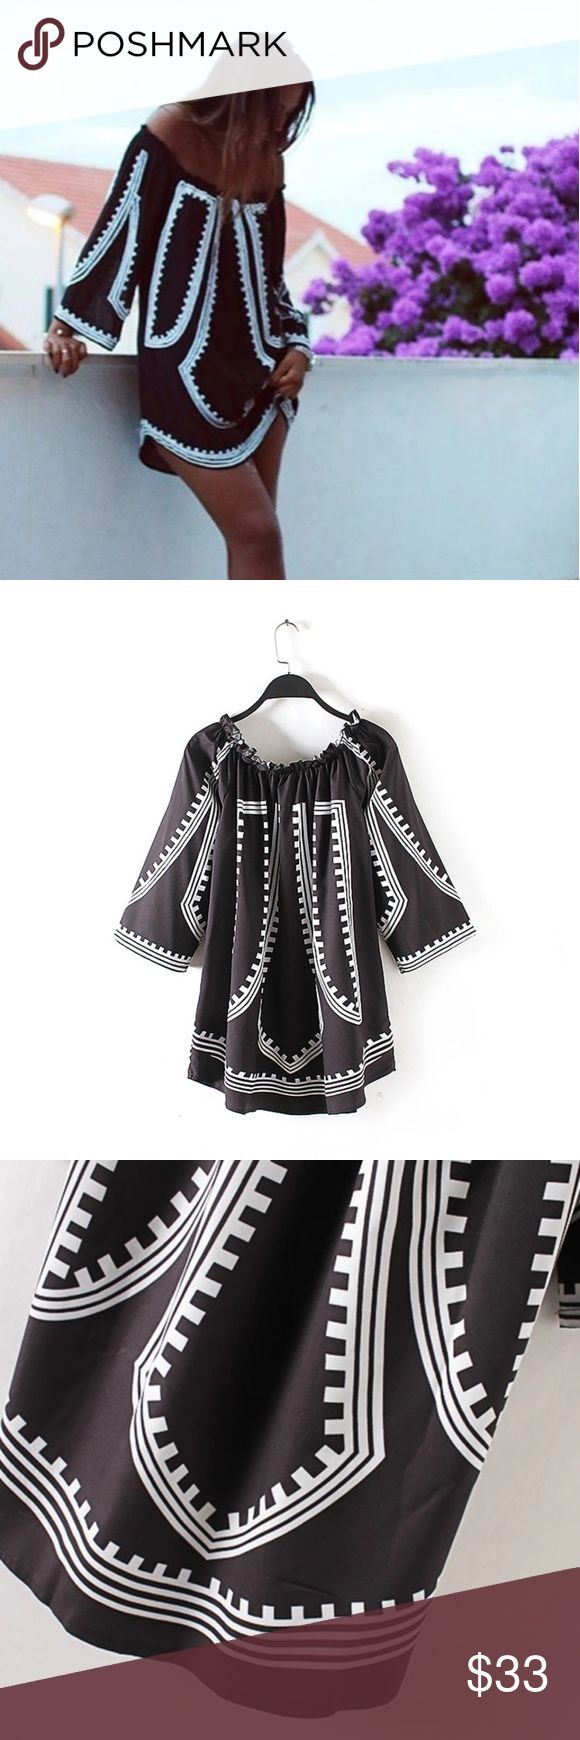 💥FLASH SALE - Mini Boho Dress Material: Polyester Clothing Length: Mid-thigh Style: Casual Sleeve Length: Three Quarter Pattern Type: Geometric Collar: Slash Neck/elastic Sleeve Style: Loose  ⚫NOTE⚫ Absolutely cute! Chiffon/Polyester material; lightweight for Spring. VERY cute on!! Hits mid-thigh when off the shoulder; shorter if up around neck. Curved hem front & back just like stock photo!   👉Dress will be steamed before shipping. Choker available⤵  ⭐PROMO - Bundle Black Bar Choker with…